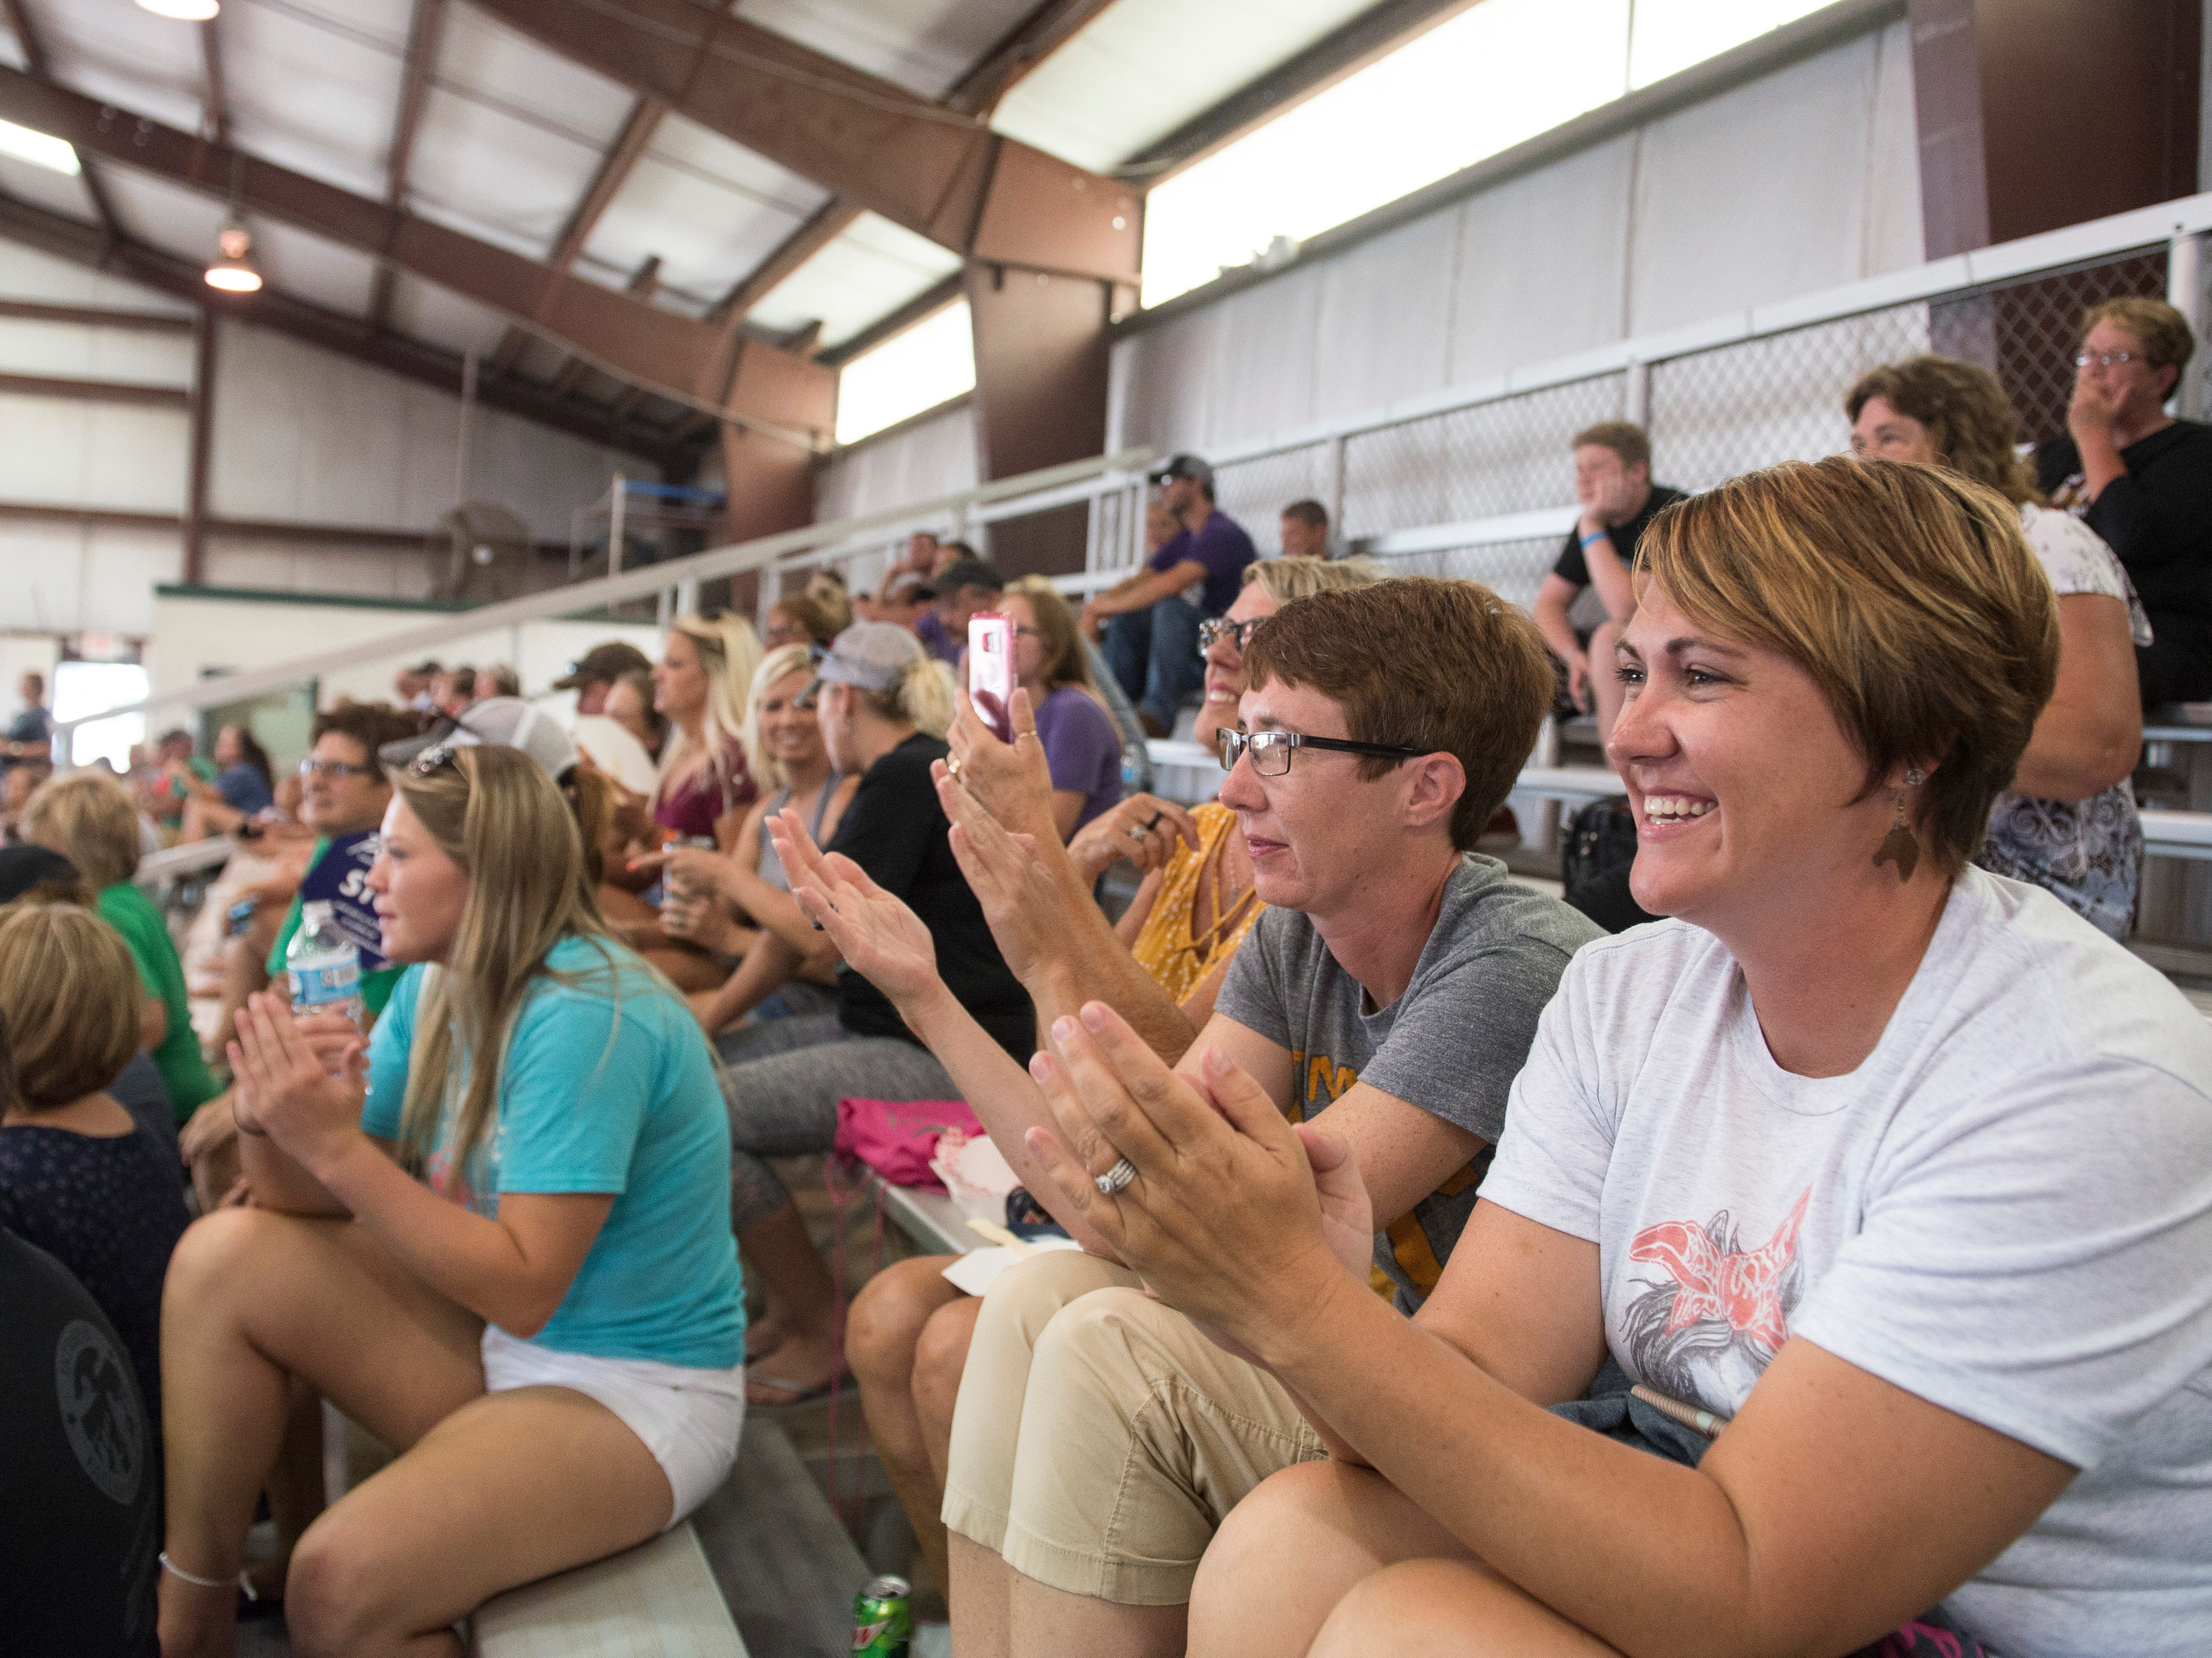 Fair attendees clap at the conclusion of the Showman of Showmen Contest in Large Animals at the Ross County Fair on August 10, 2018, in Chillicothe, Ohio.